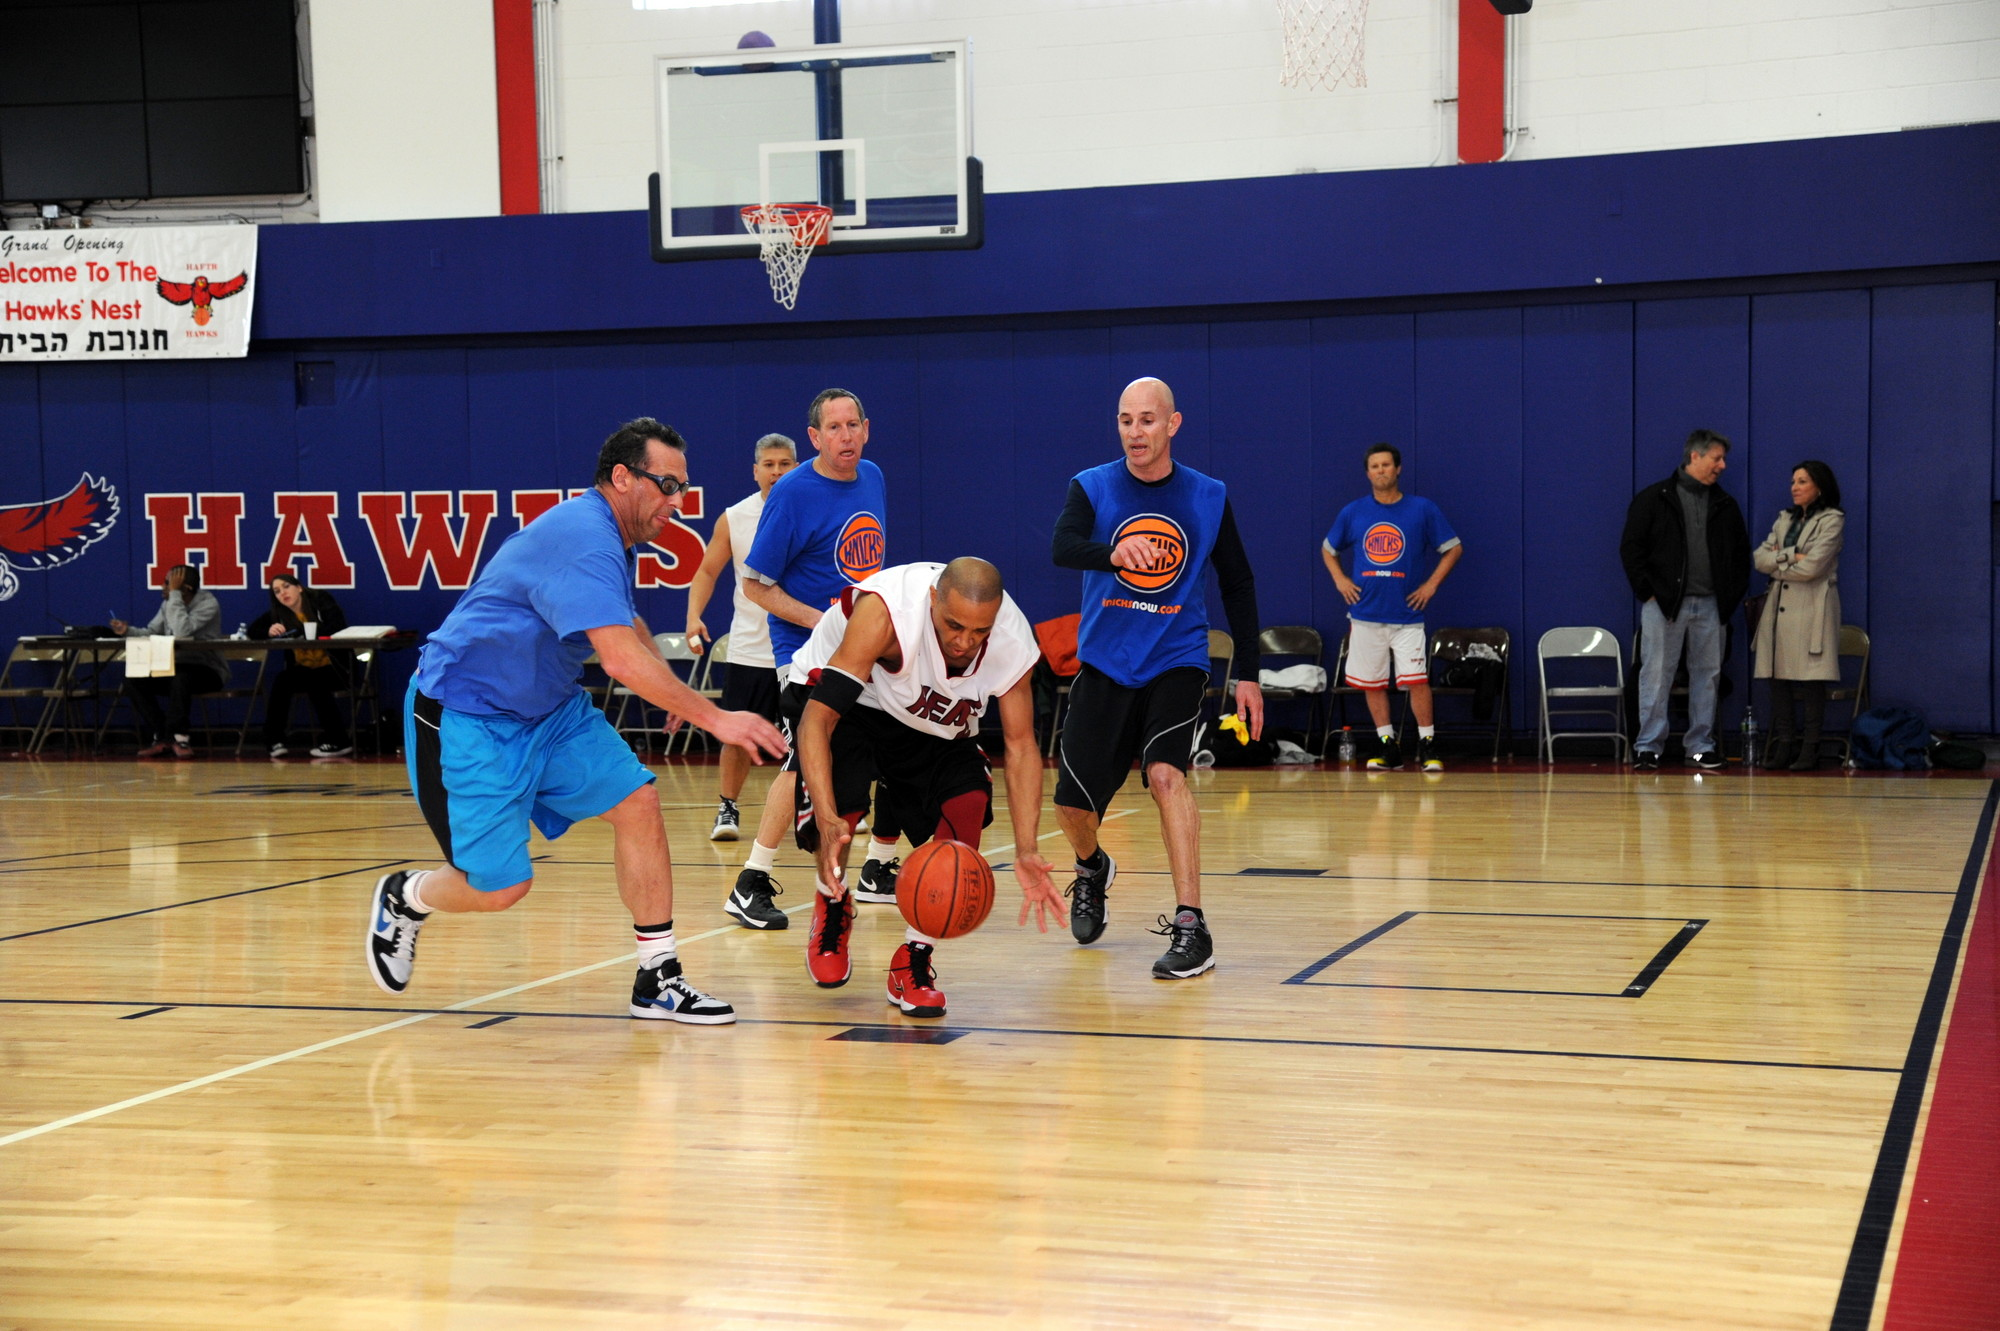 The Five Towns Community Chest Youth Board Basketball Tournament is for a good cause, but that doesn't stop the players from being competitive. At right, in an adult division game, Jim Lusk, left, and James Glenn battled for the ball.